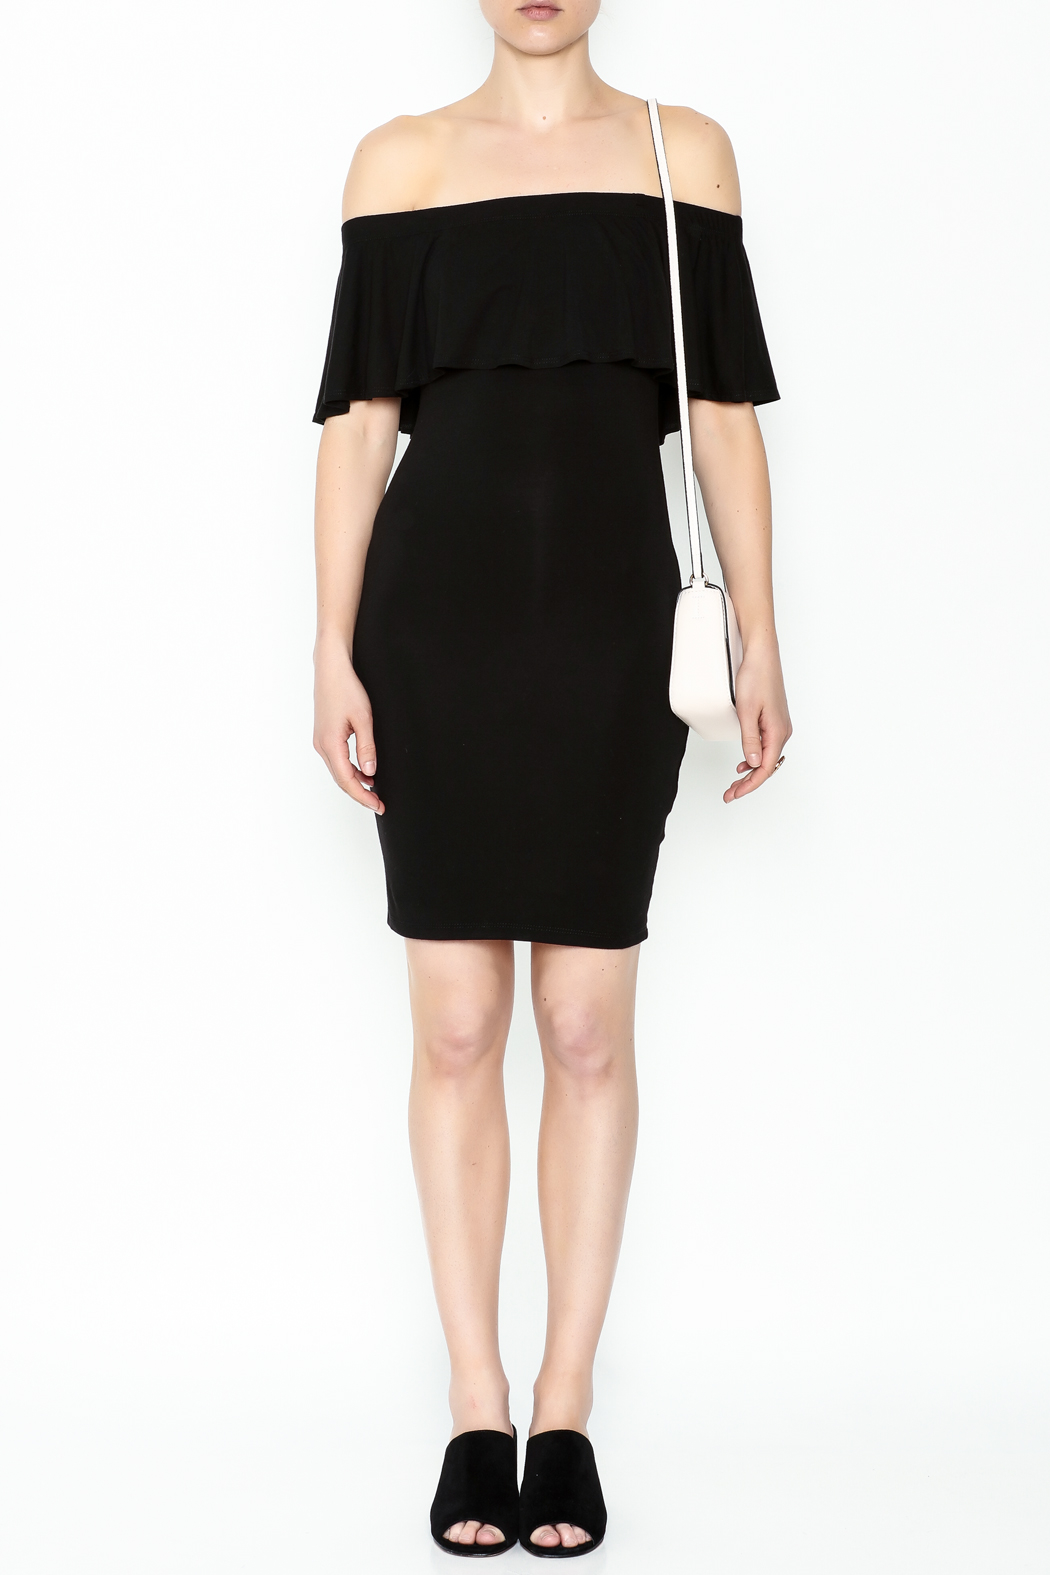 Audrey 3+1 Off Shoulder Cindy Dress - Side Cropped Image